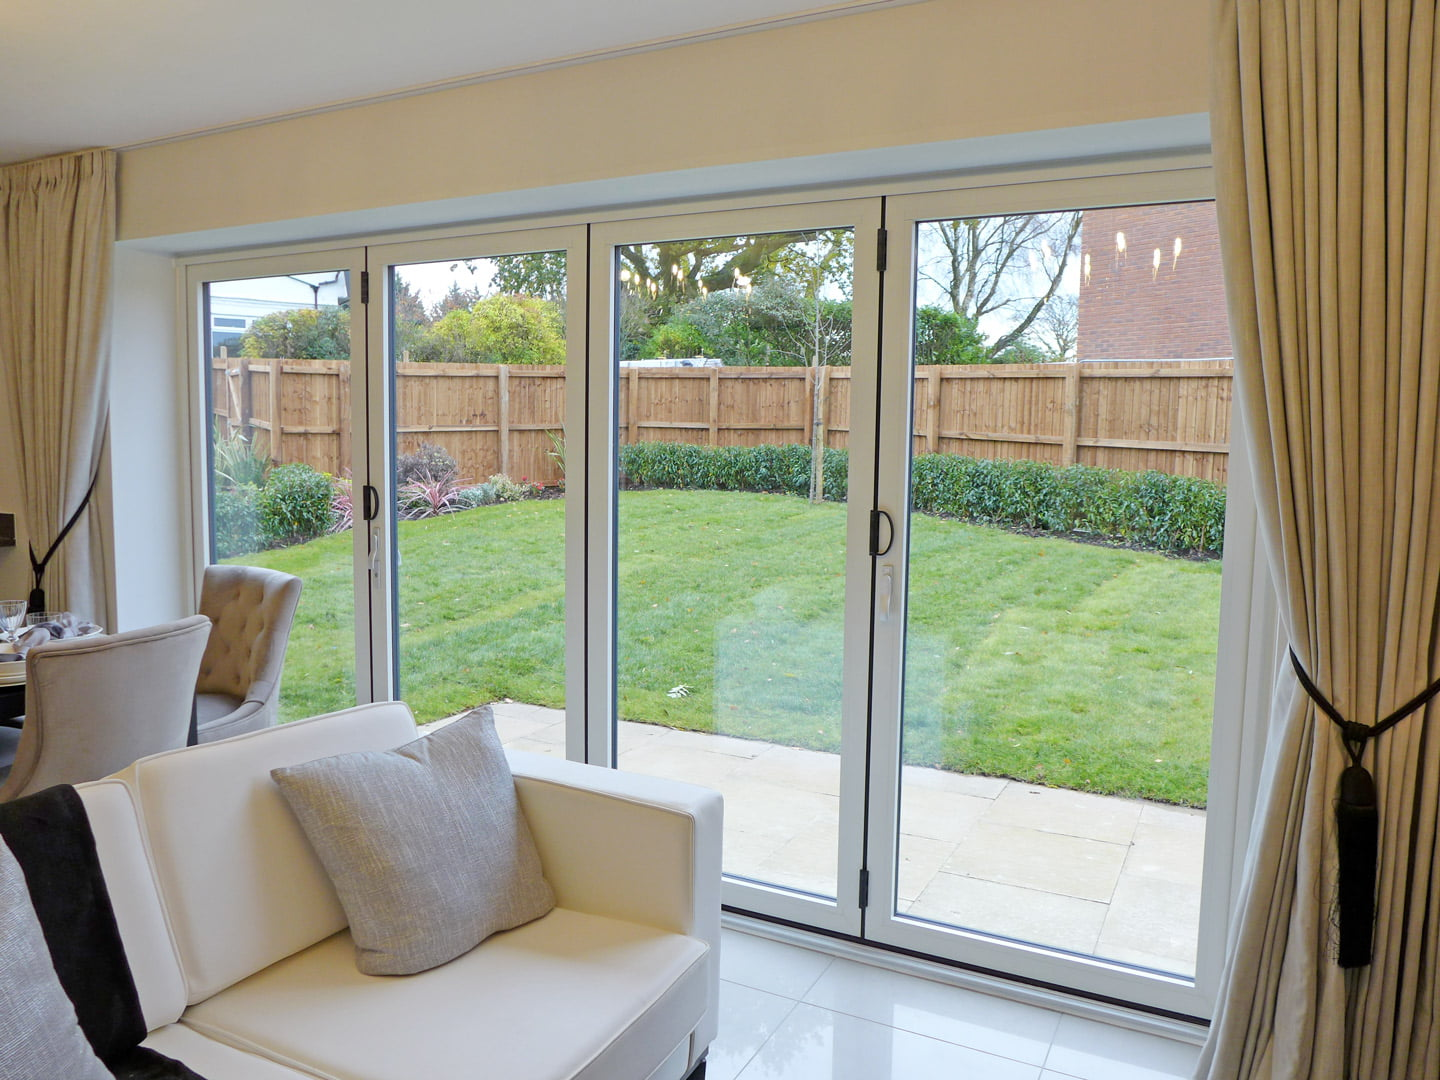 Example bi fold doors to garden